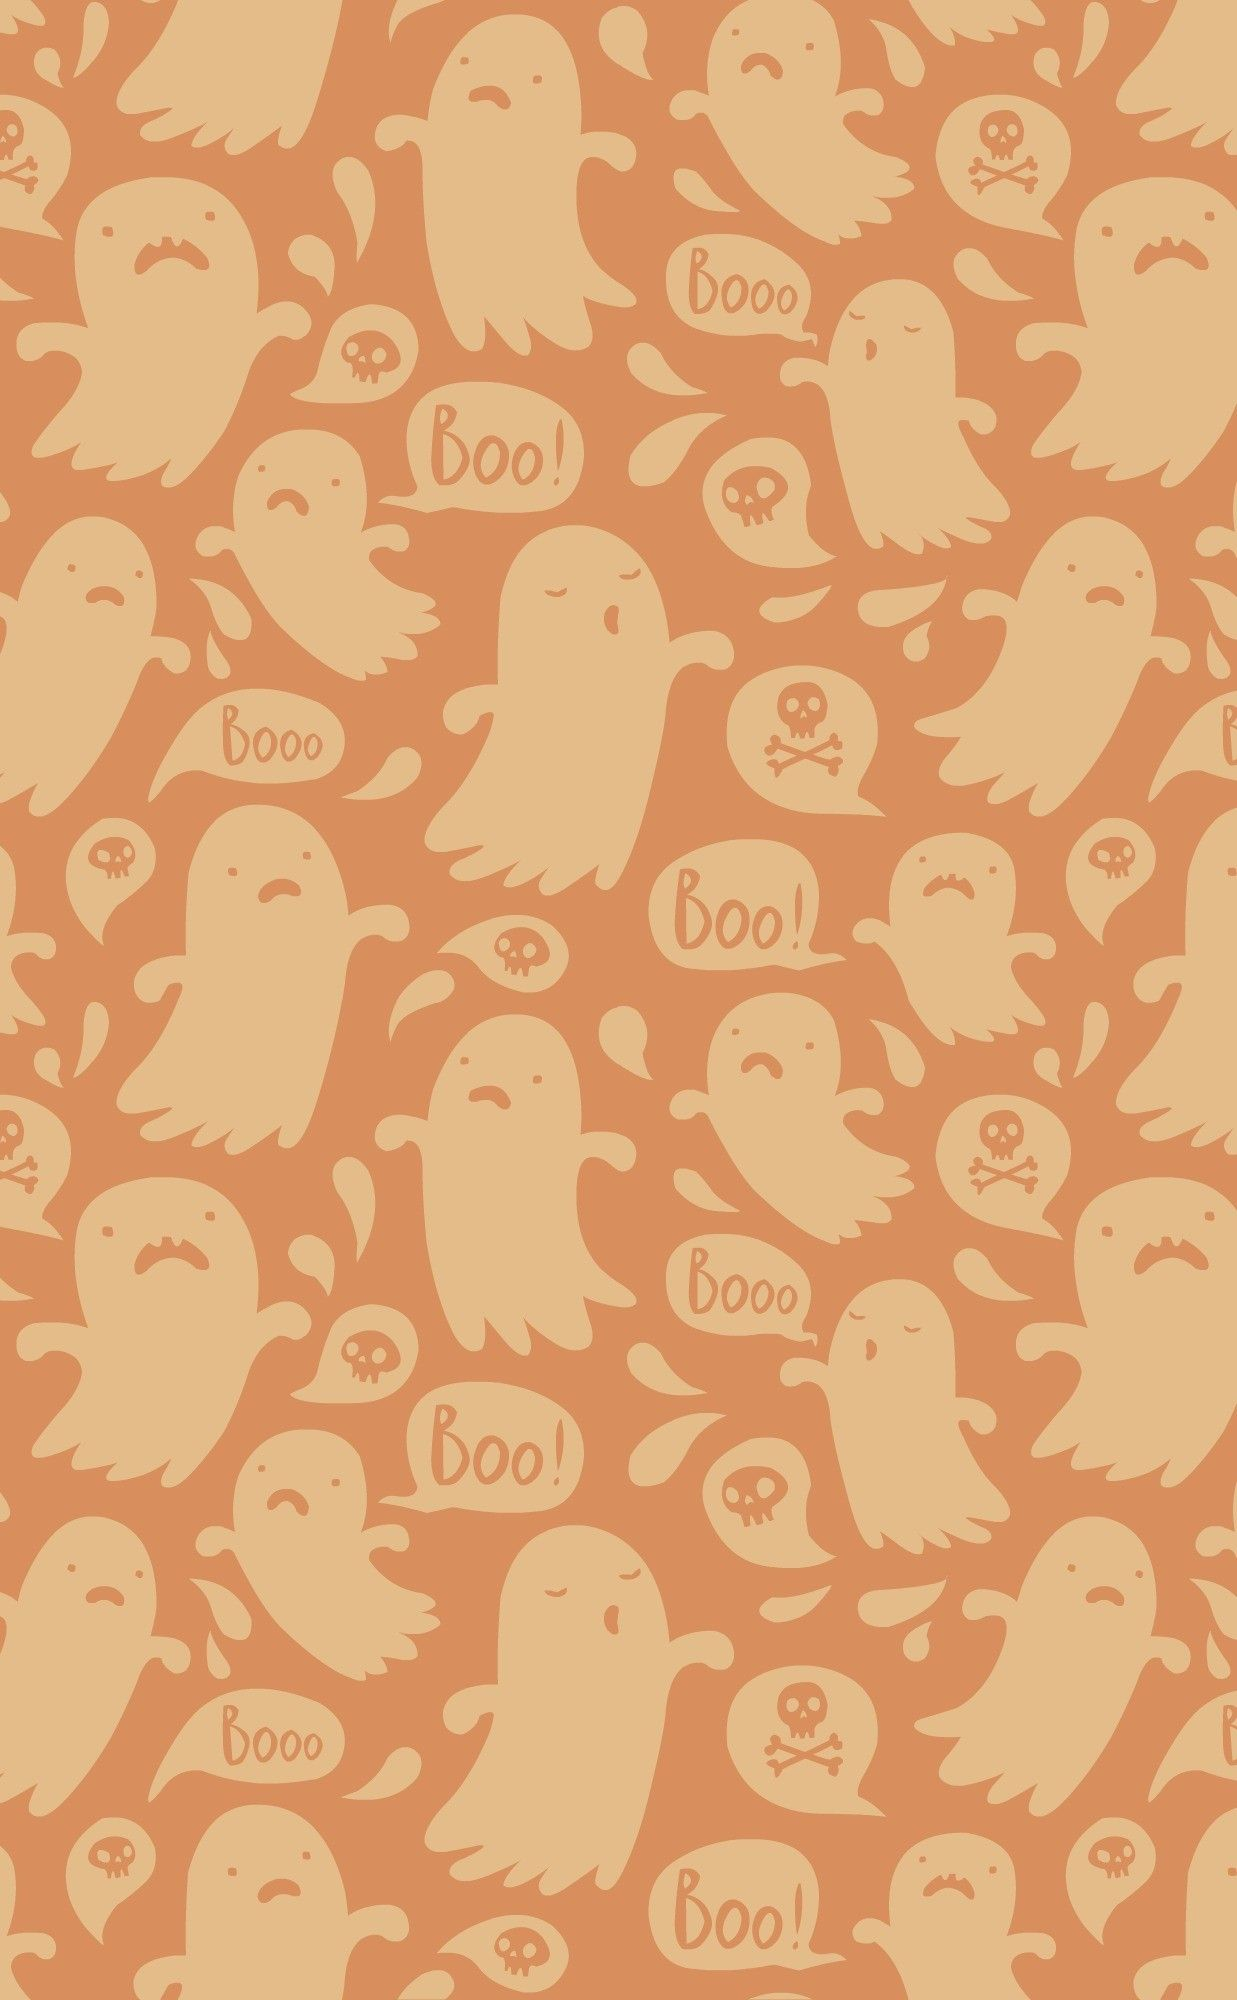 Cute Halloween iPhone Wallpaper (81+ images) #octoberwallpaperiphone